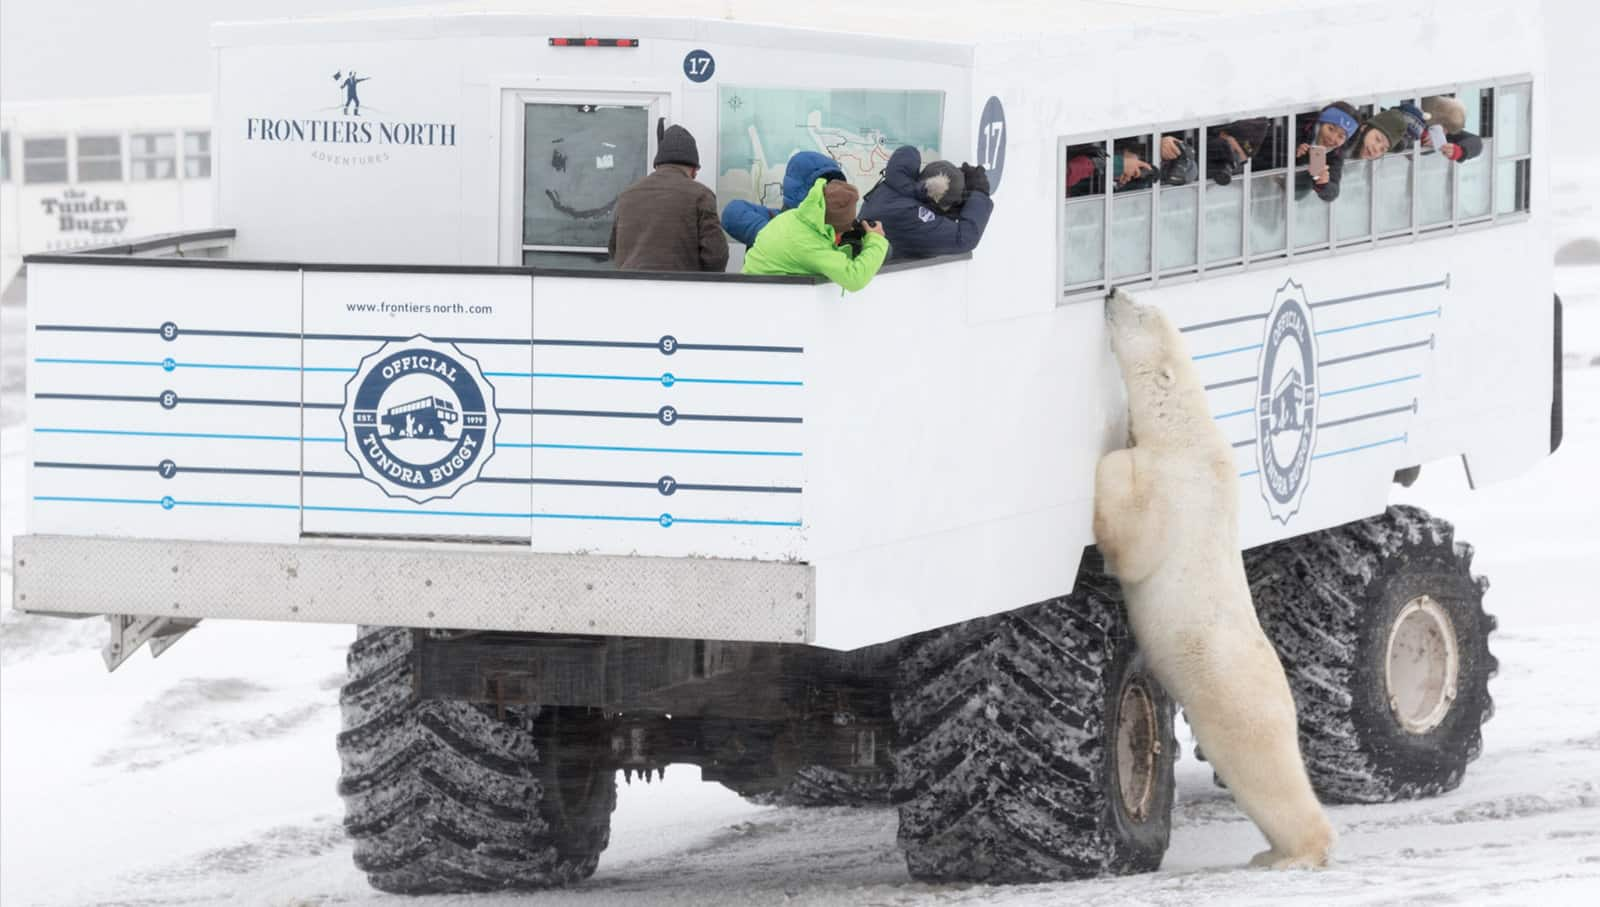 A color photograph of the Official Tundra Buggy with people photographing and looking at a polar bear who is leaning against the side of the vehicle.